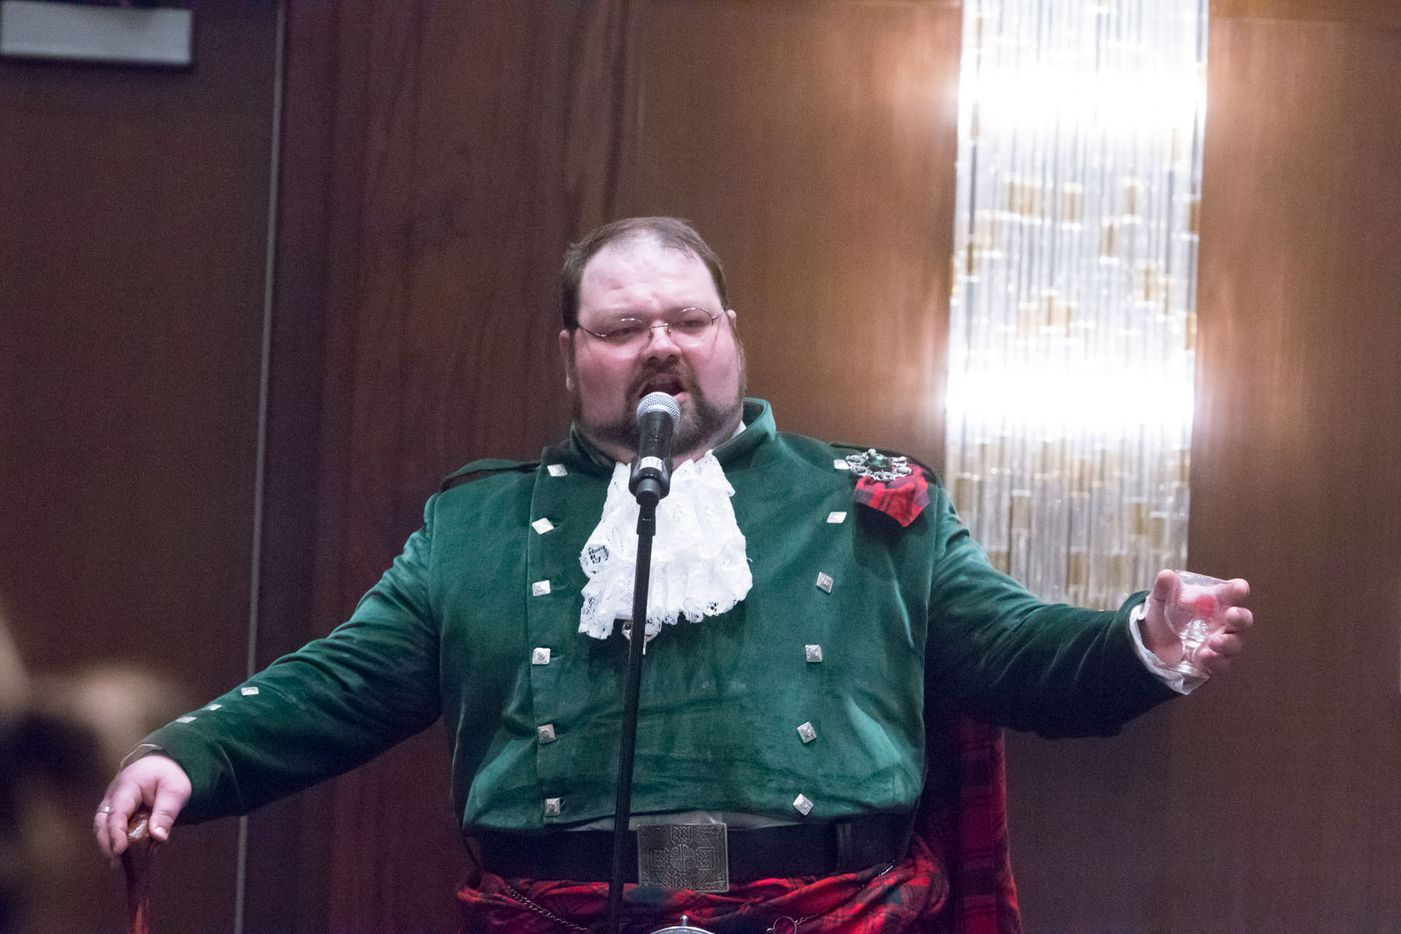 NTX Beer Week held its Second Annual Brewers Ball at the Renaissance Dallas Hotel on November 13, 2015. Dallas Opera had singers perform during the evening.